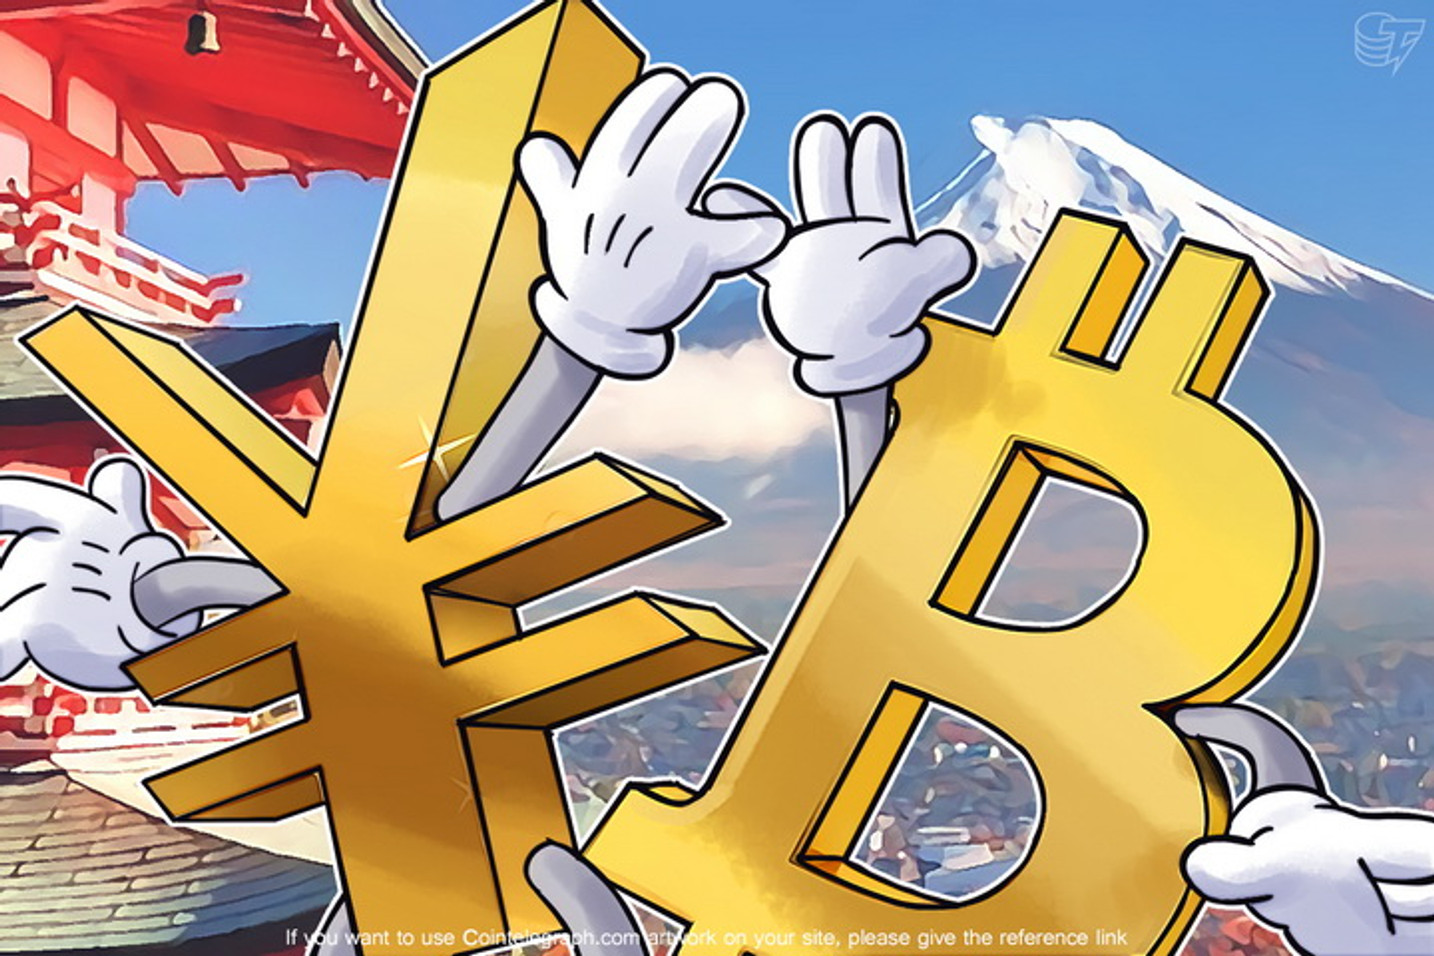 Japan May Recognize Bitcoin as Legitimate Currency